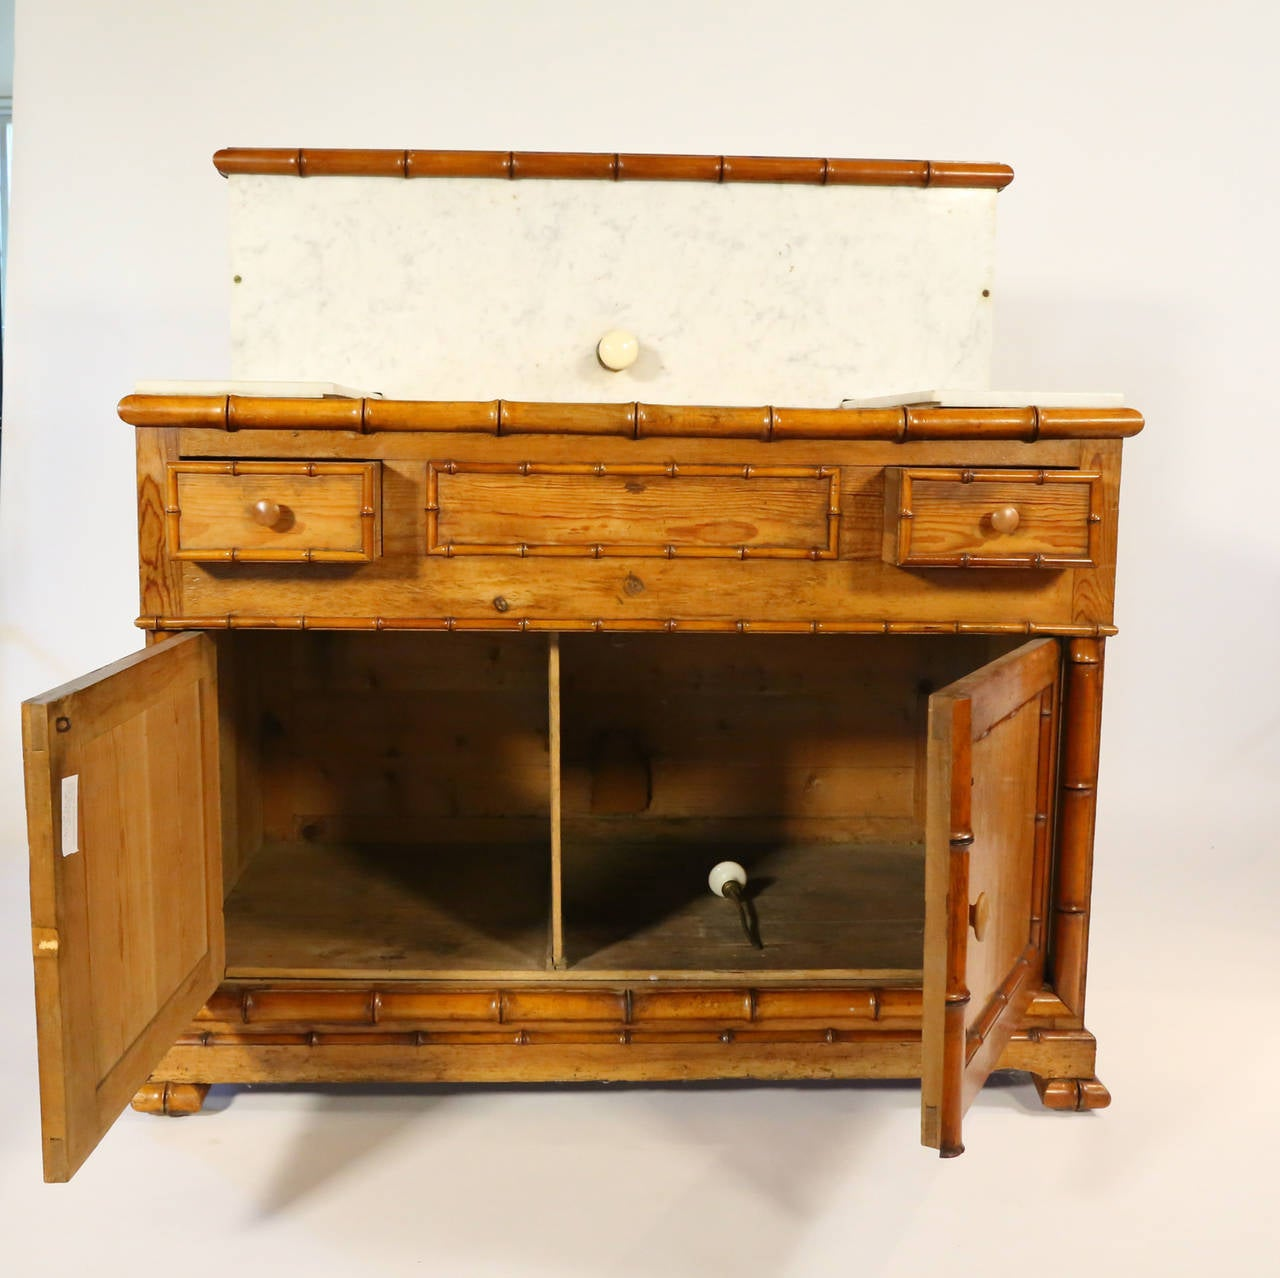 19th century pair of bamboo washroom cabinets for sale at for 19th century kitchen cabinets